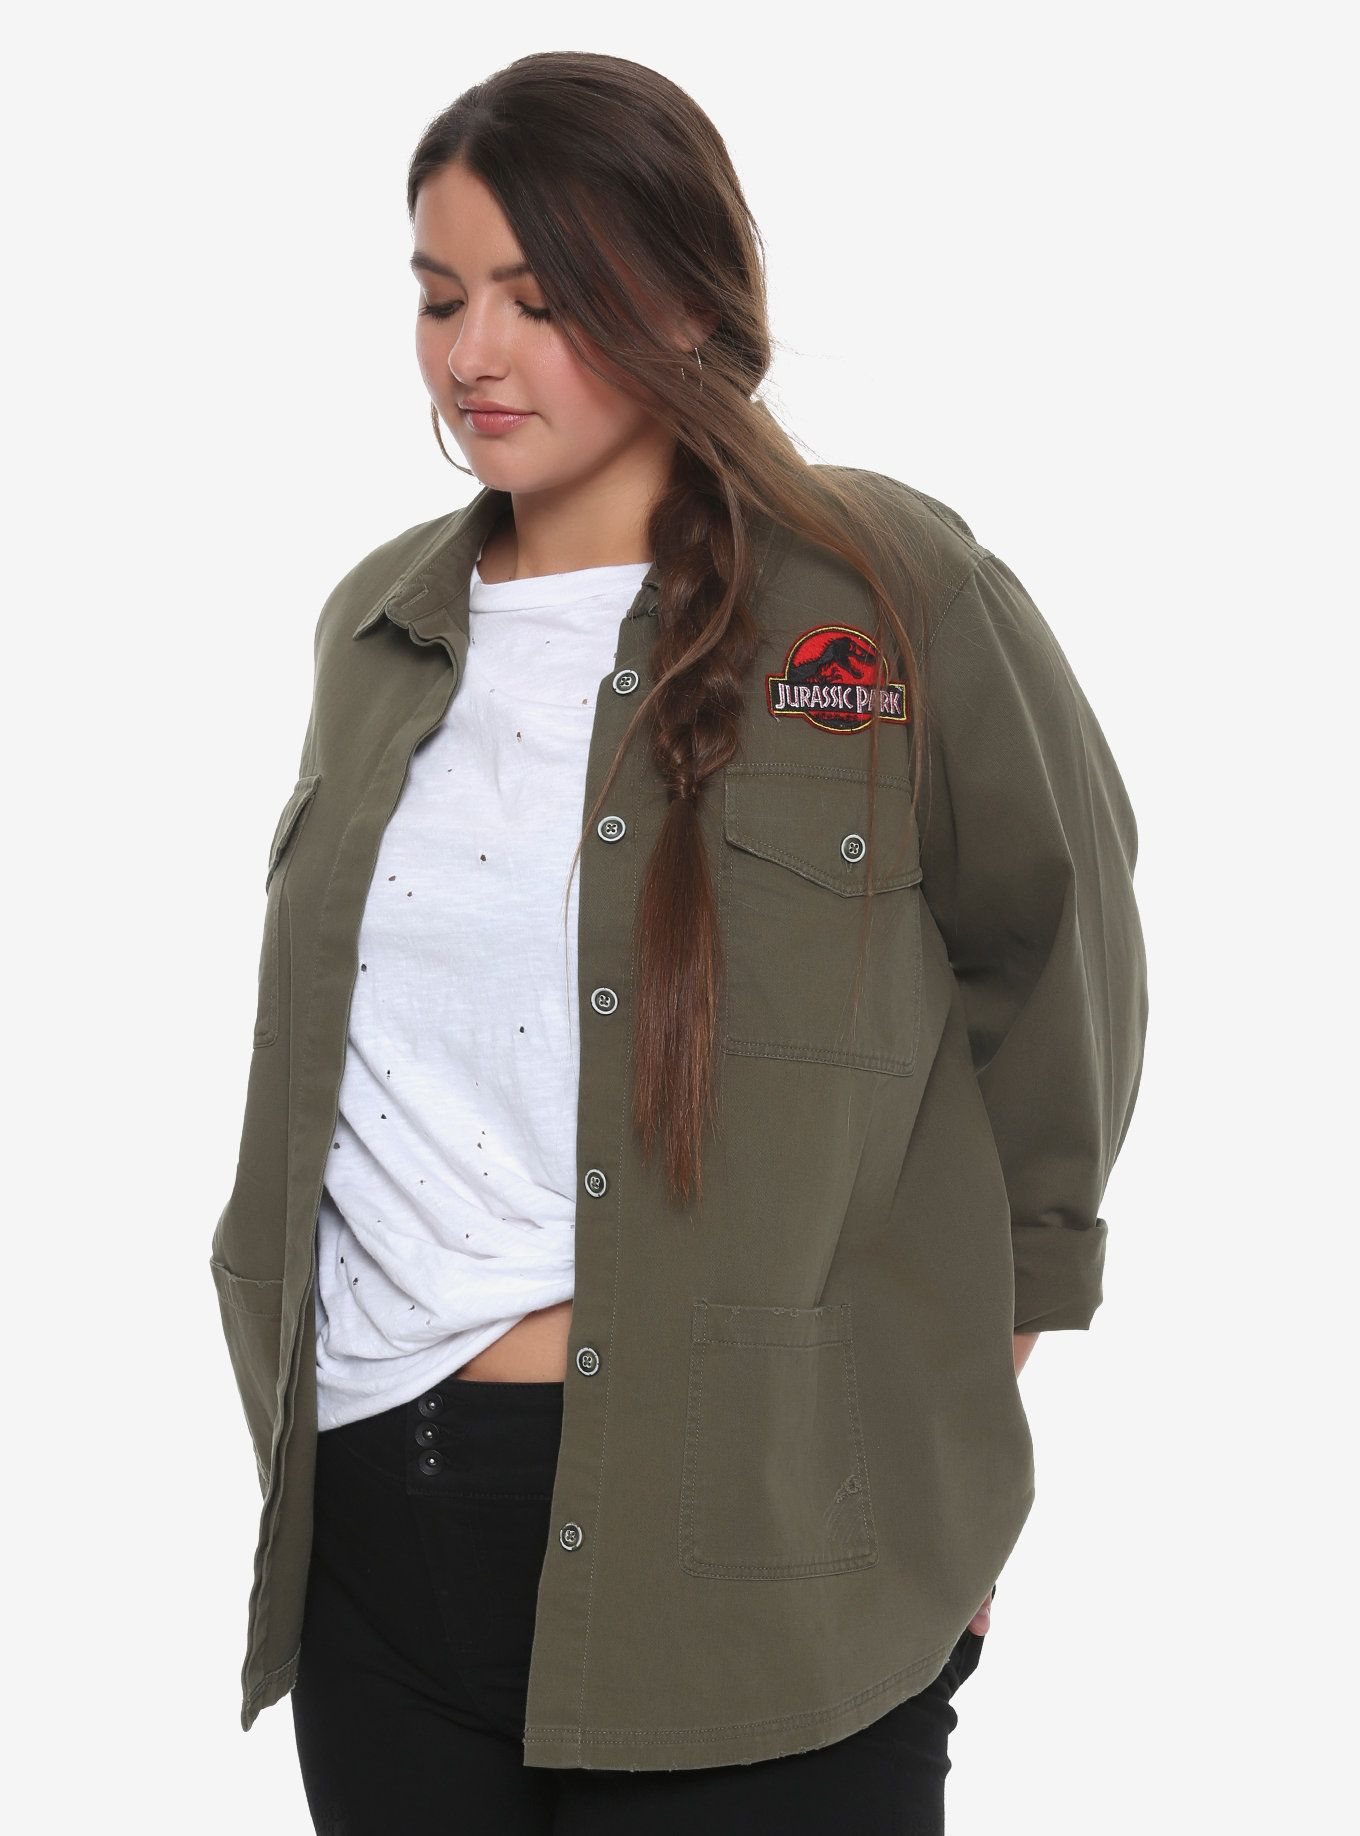 2e7d2a0f490 Jurassic Park Destructed Girls Staff Jacket Plus Size